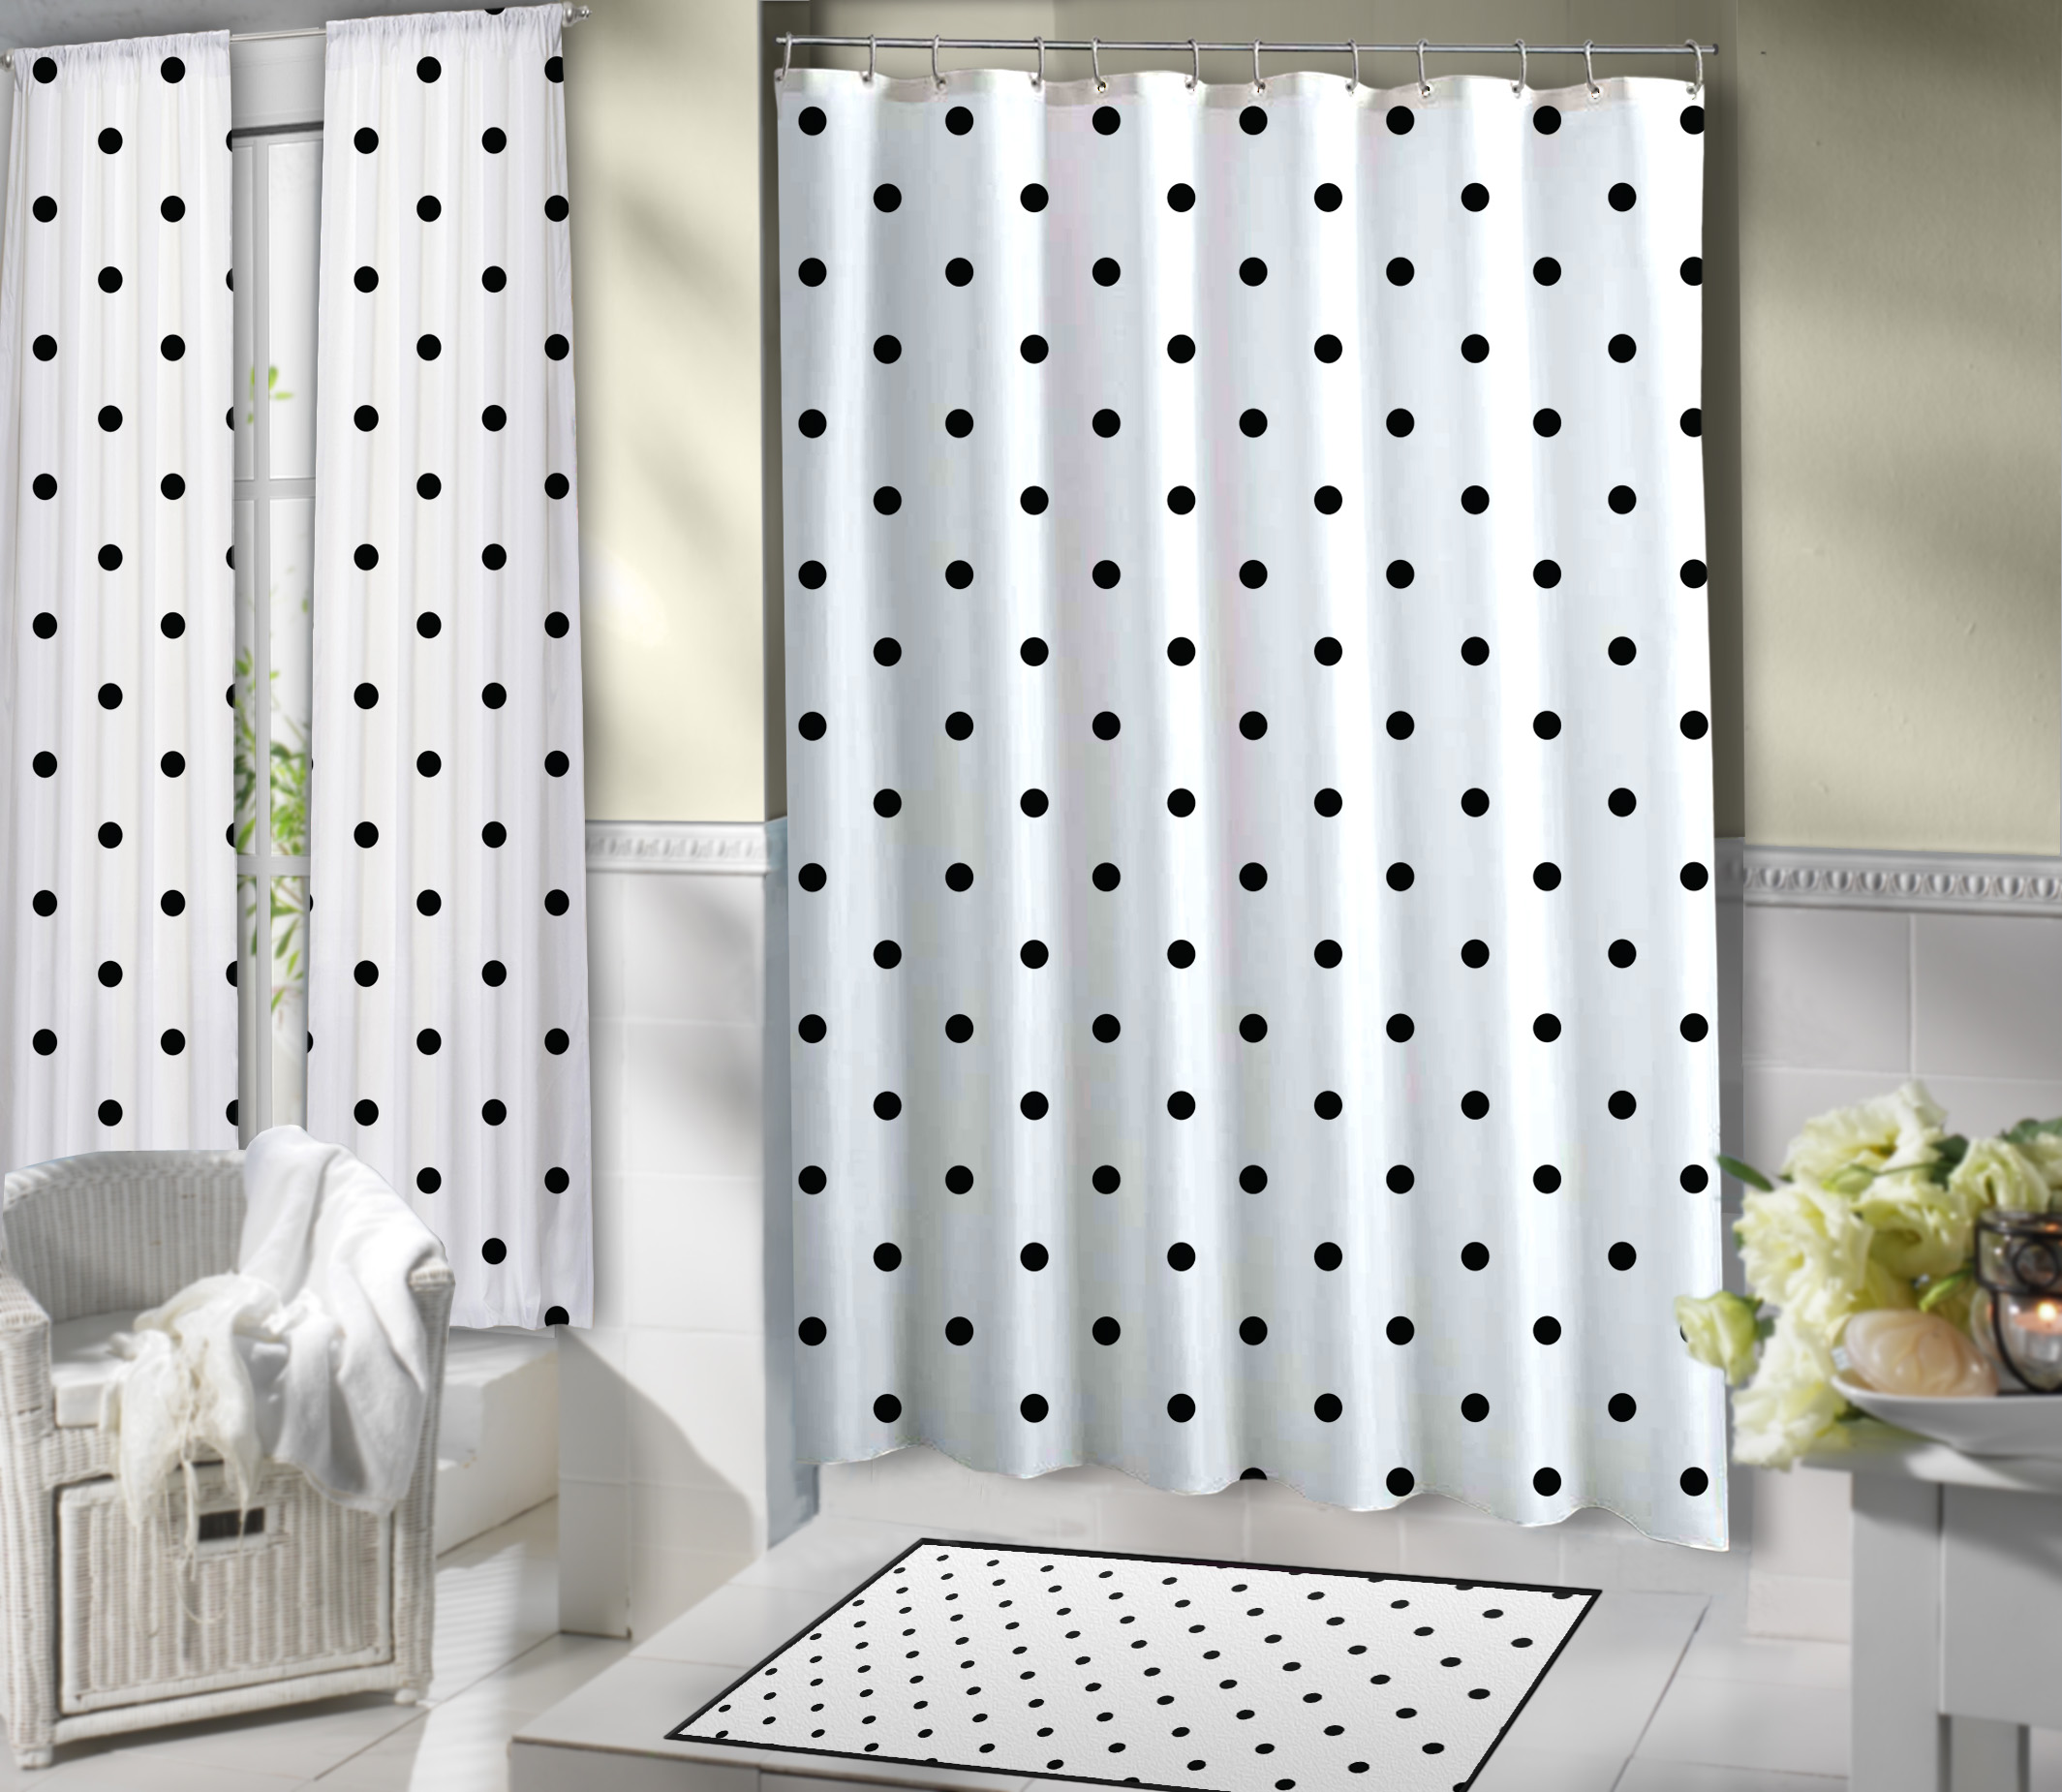 Black And White Polka Dot Shower Curtain 97 Eloquent Innovations